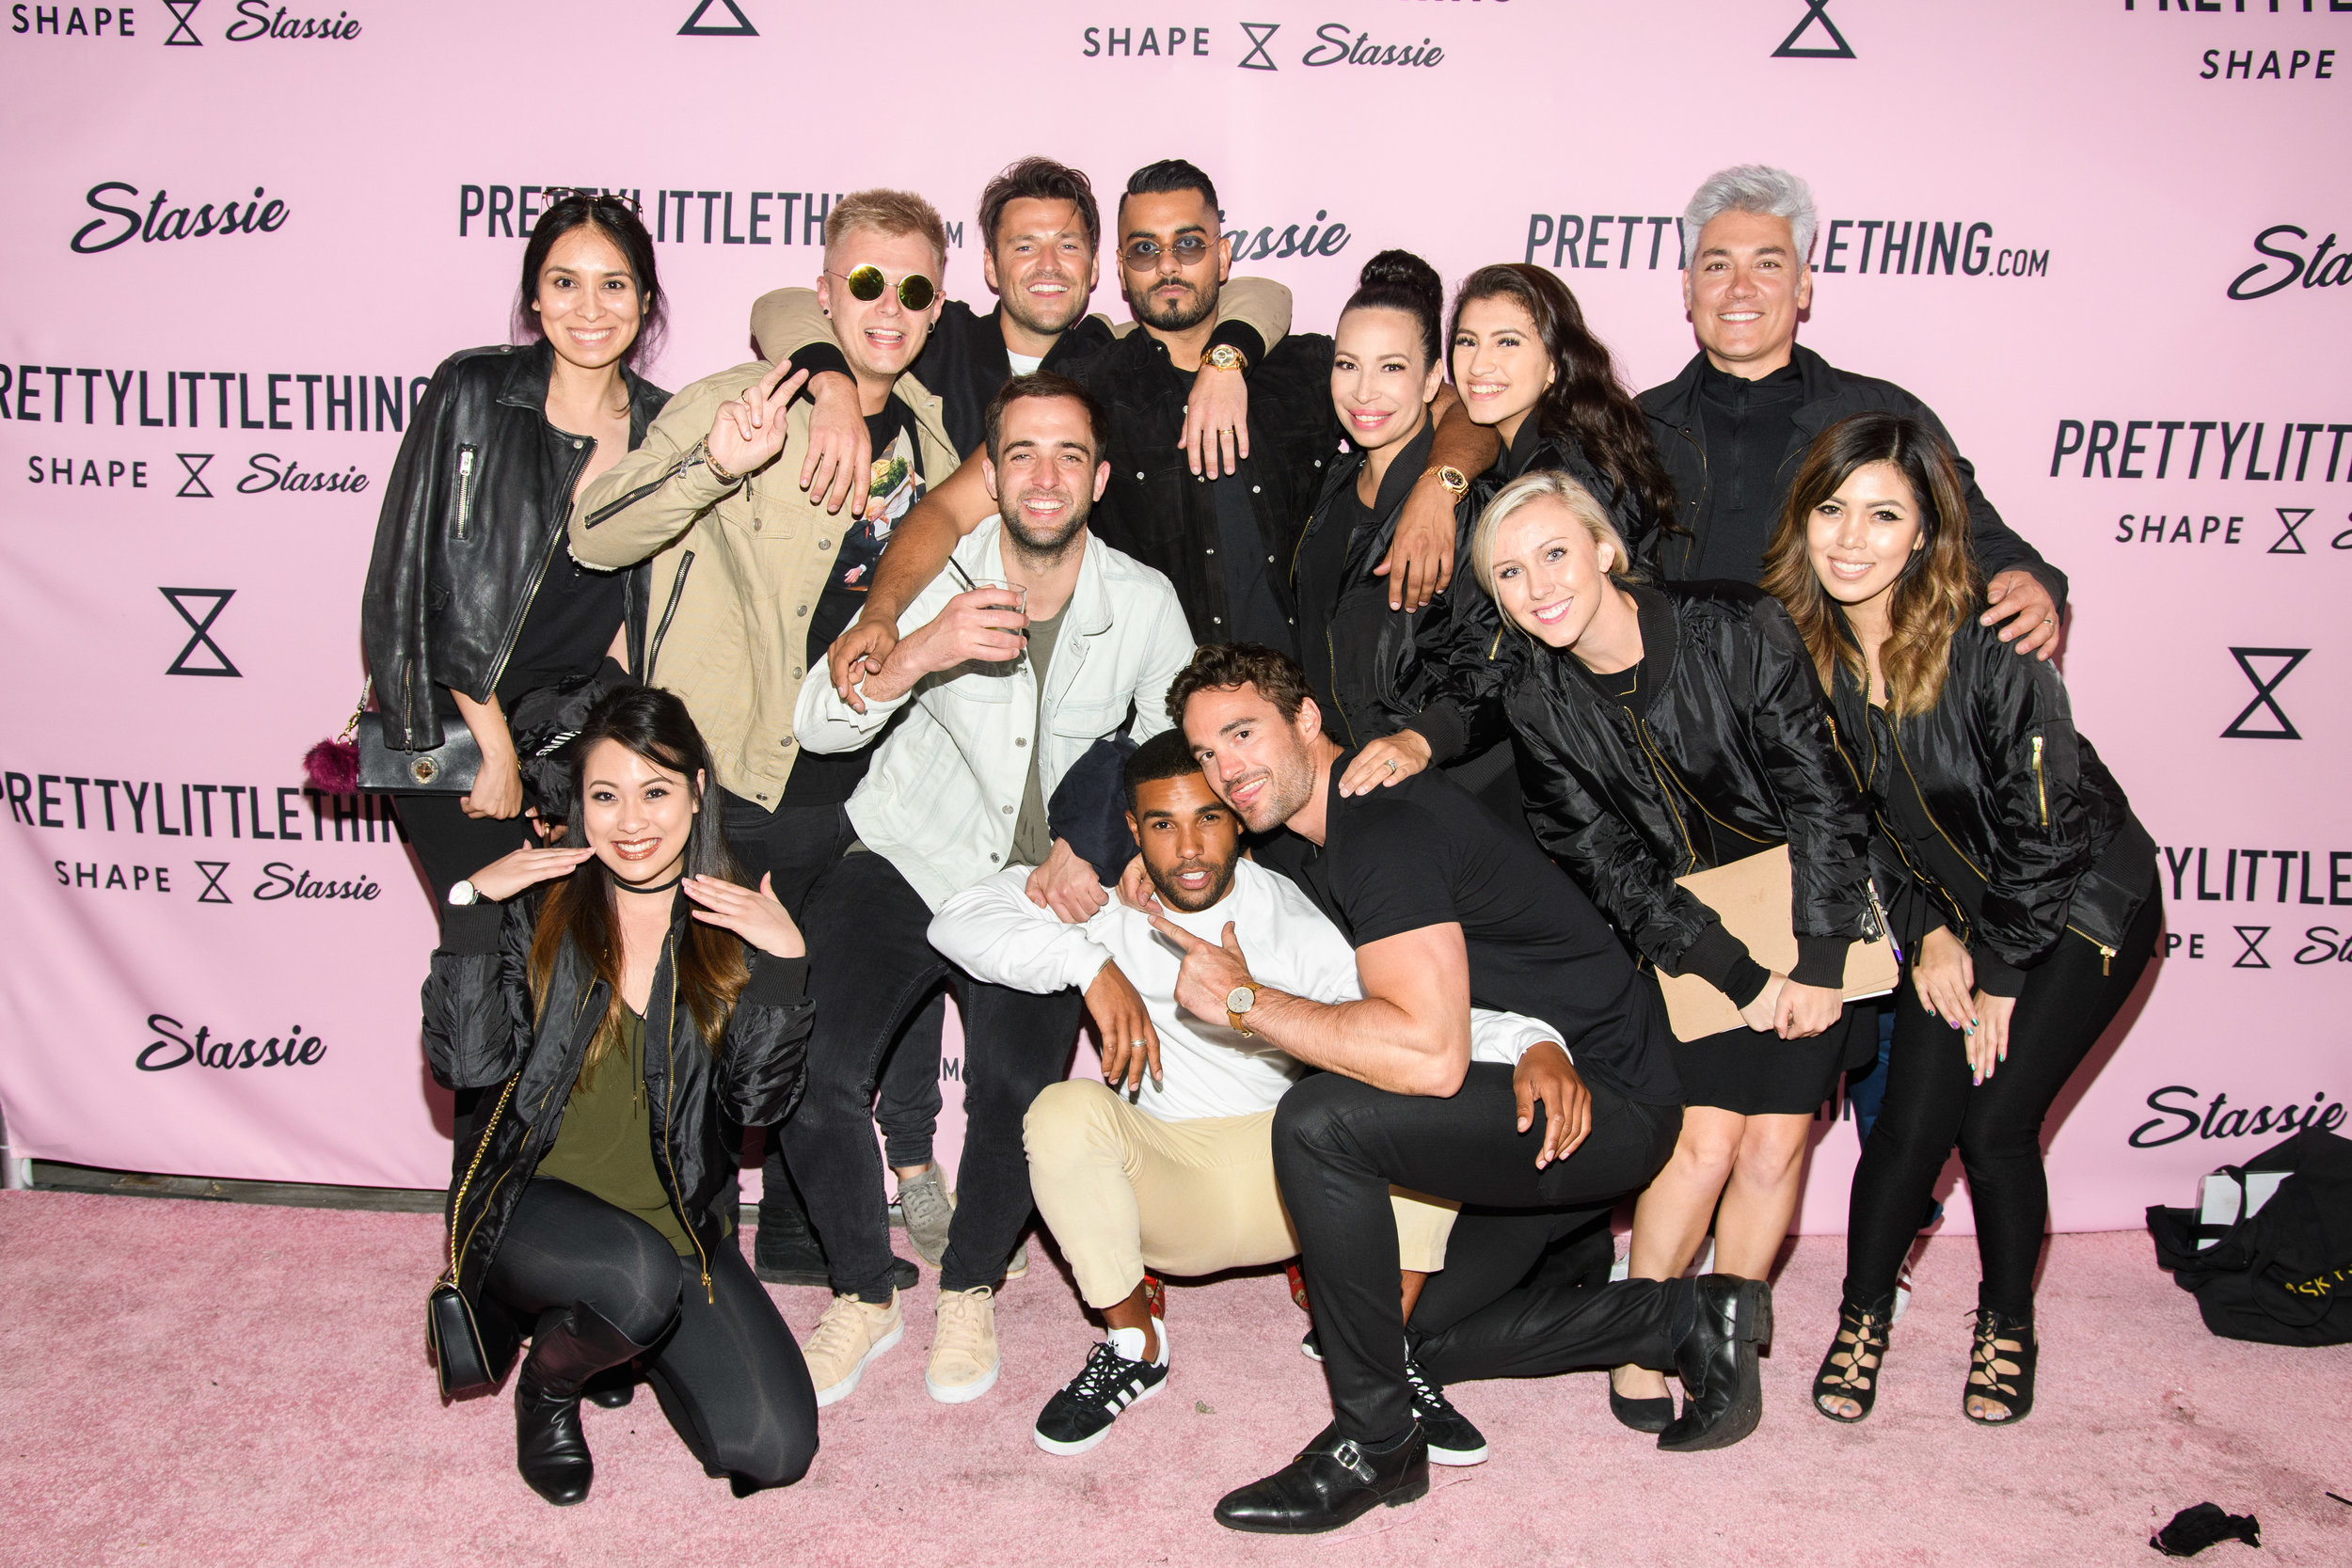 PrettyLittleThing New PLT Shape Collection with Stassie Celebrity Launch Party  WOTP team and Umar Kamani.jpg